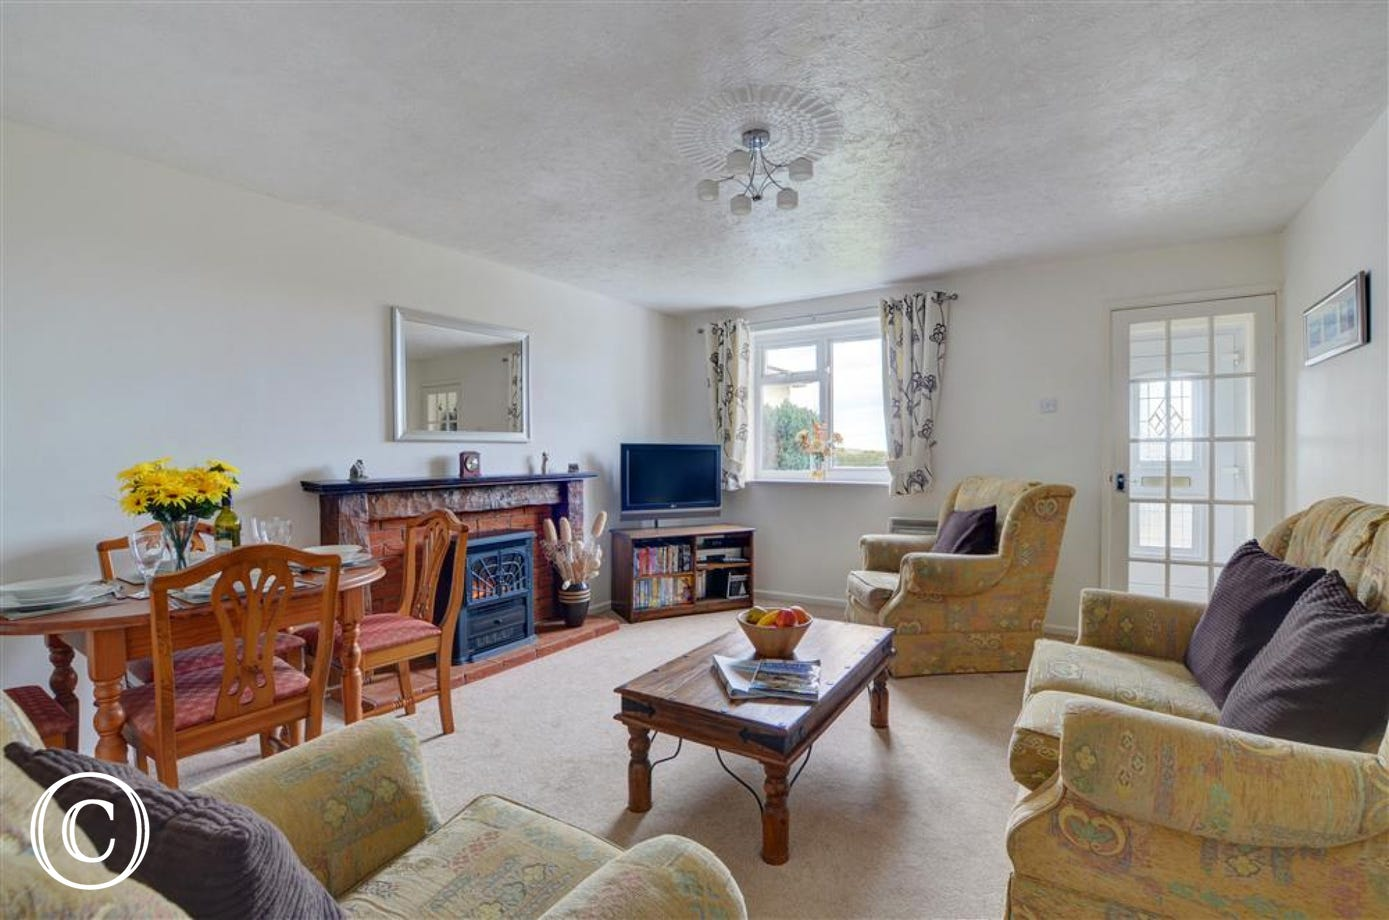 The good sized and very comfortable living/dining room offers views over the village and out towards the sea